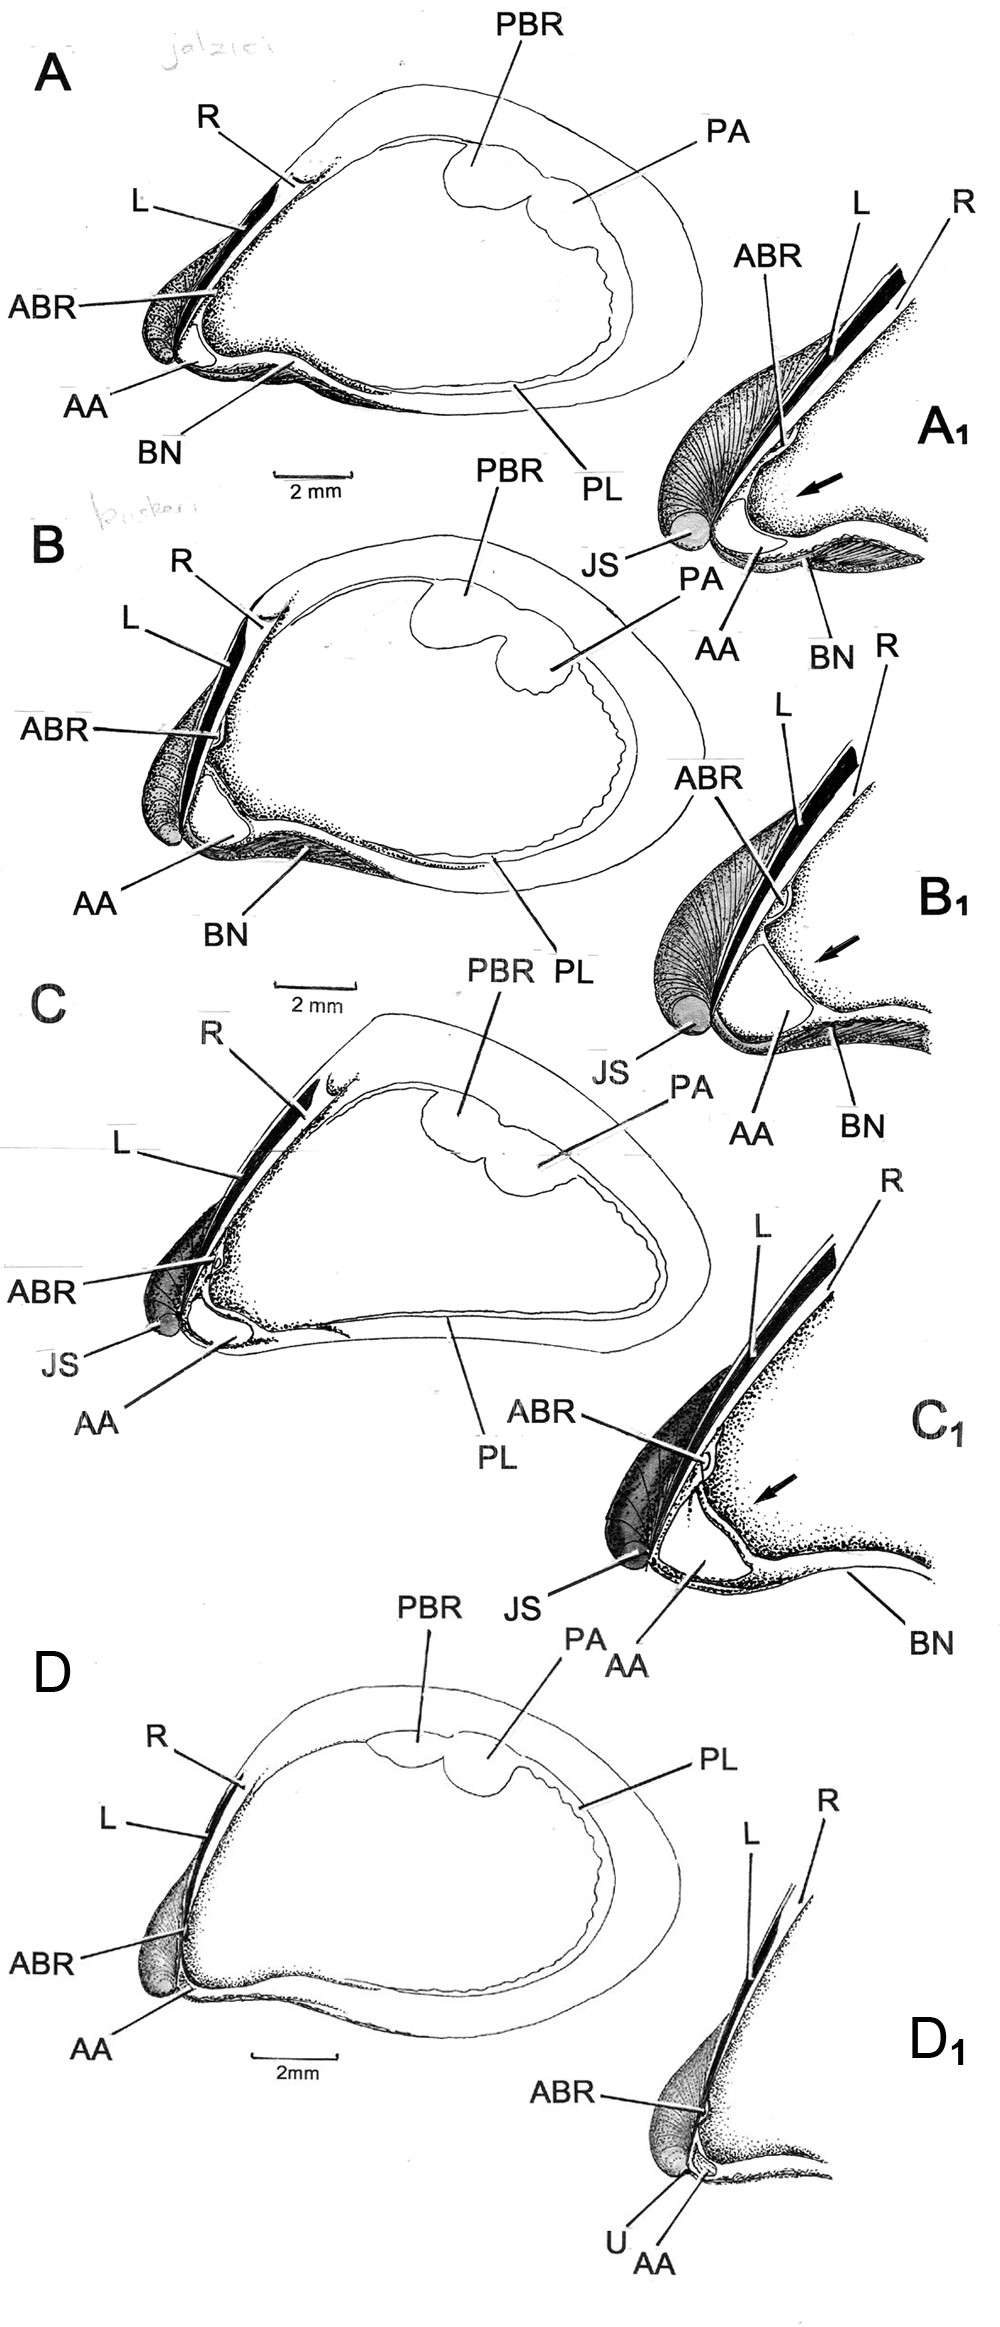 http://static-content.springer.com/image/art%3A10.1186%2F1742-9994-10-5/MediaObjects/12983_2012_Article_222_Fig7_HTML.jpg